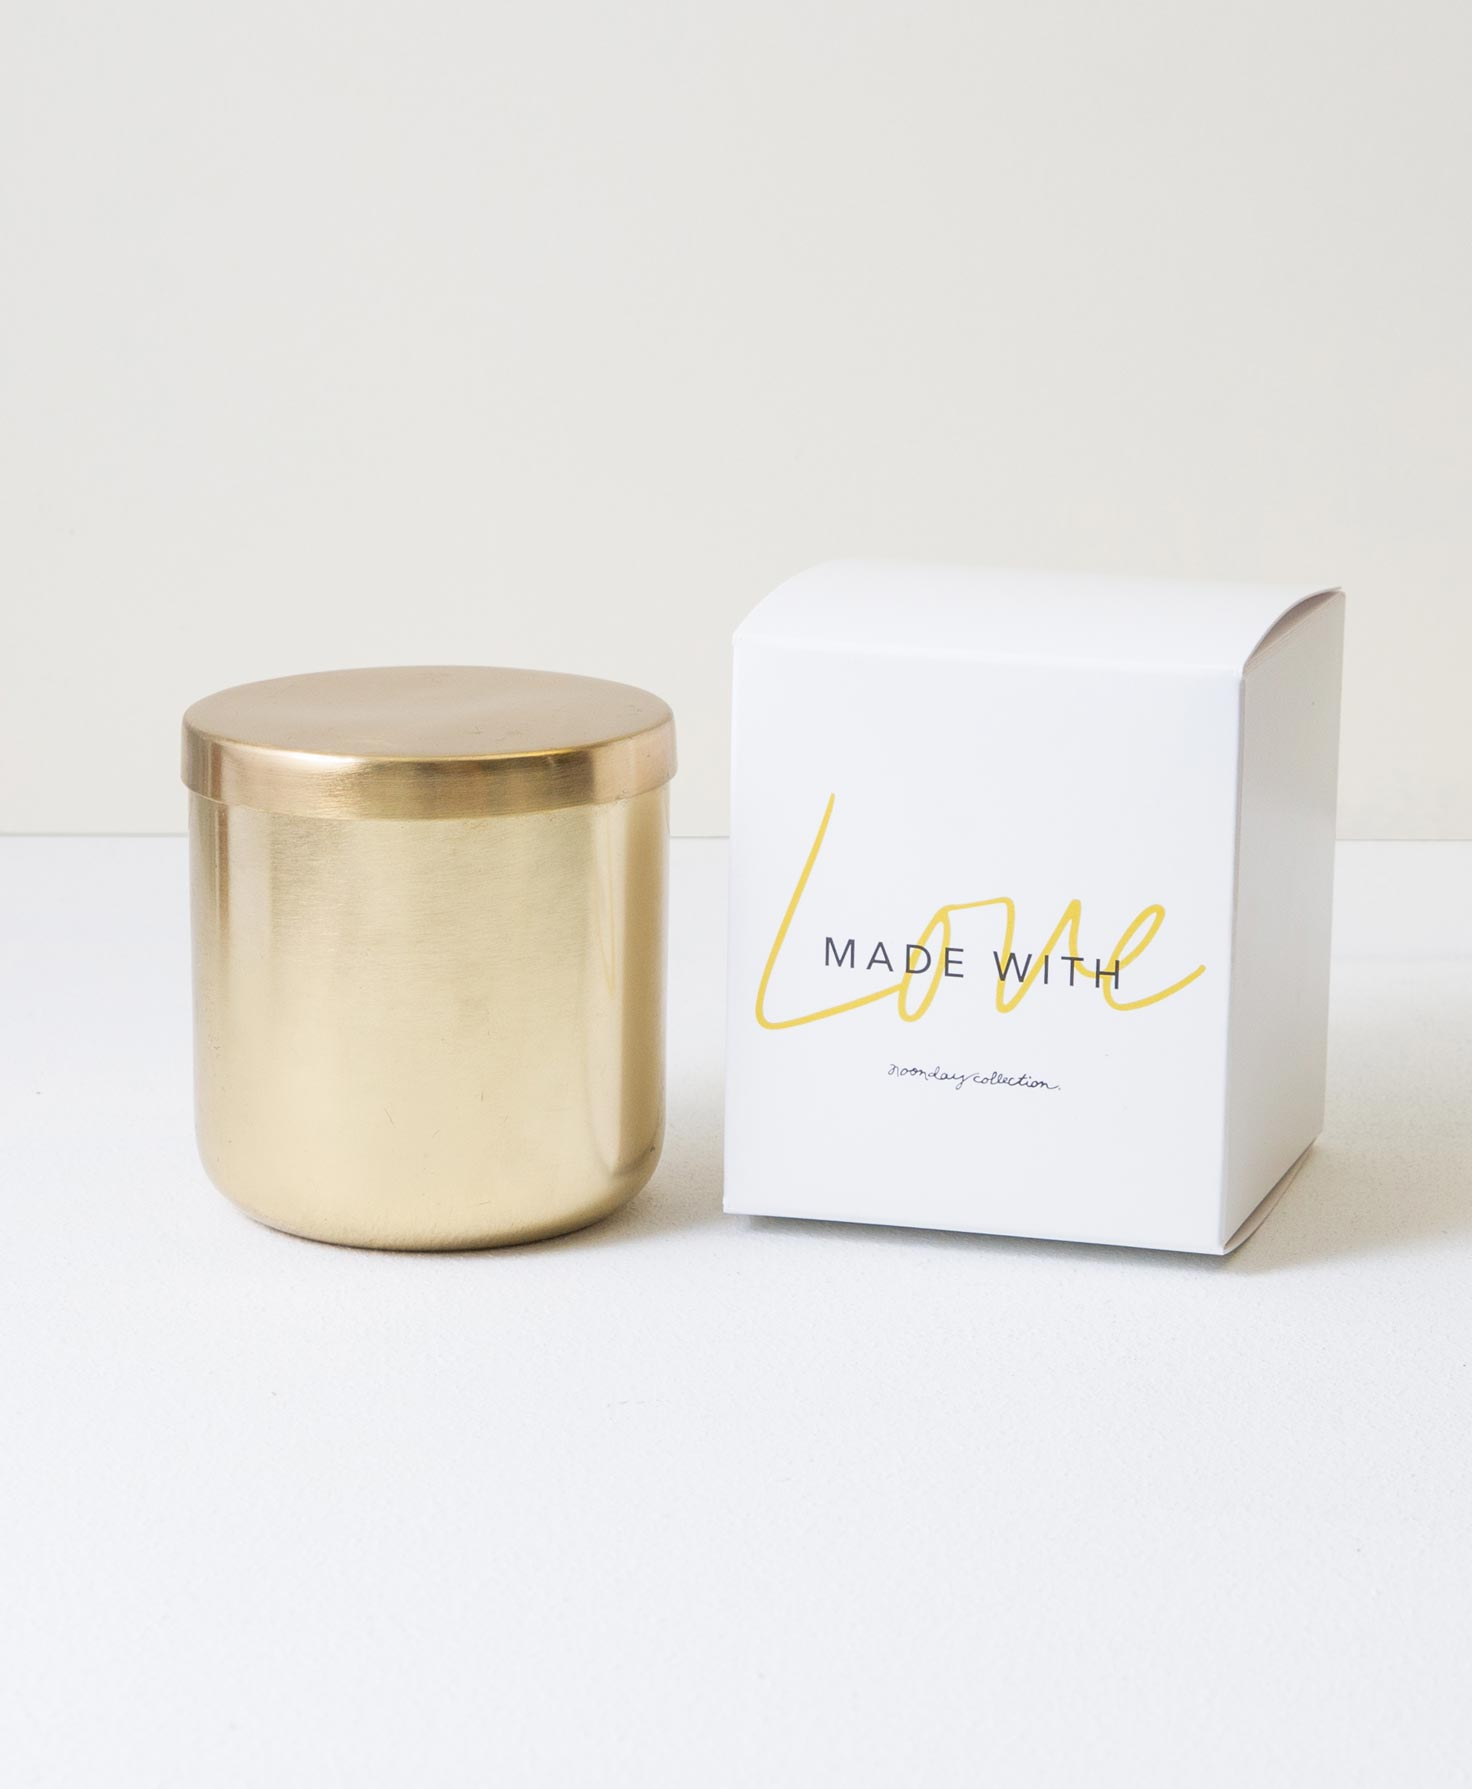 The Flourish Candle is lit with its brass lid sitting next to it. The candle is contained in a cylindrical brass vessel with a handcrafted, brushed finish. The soy candle itself is cream colored.